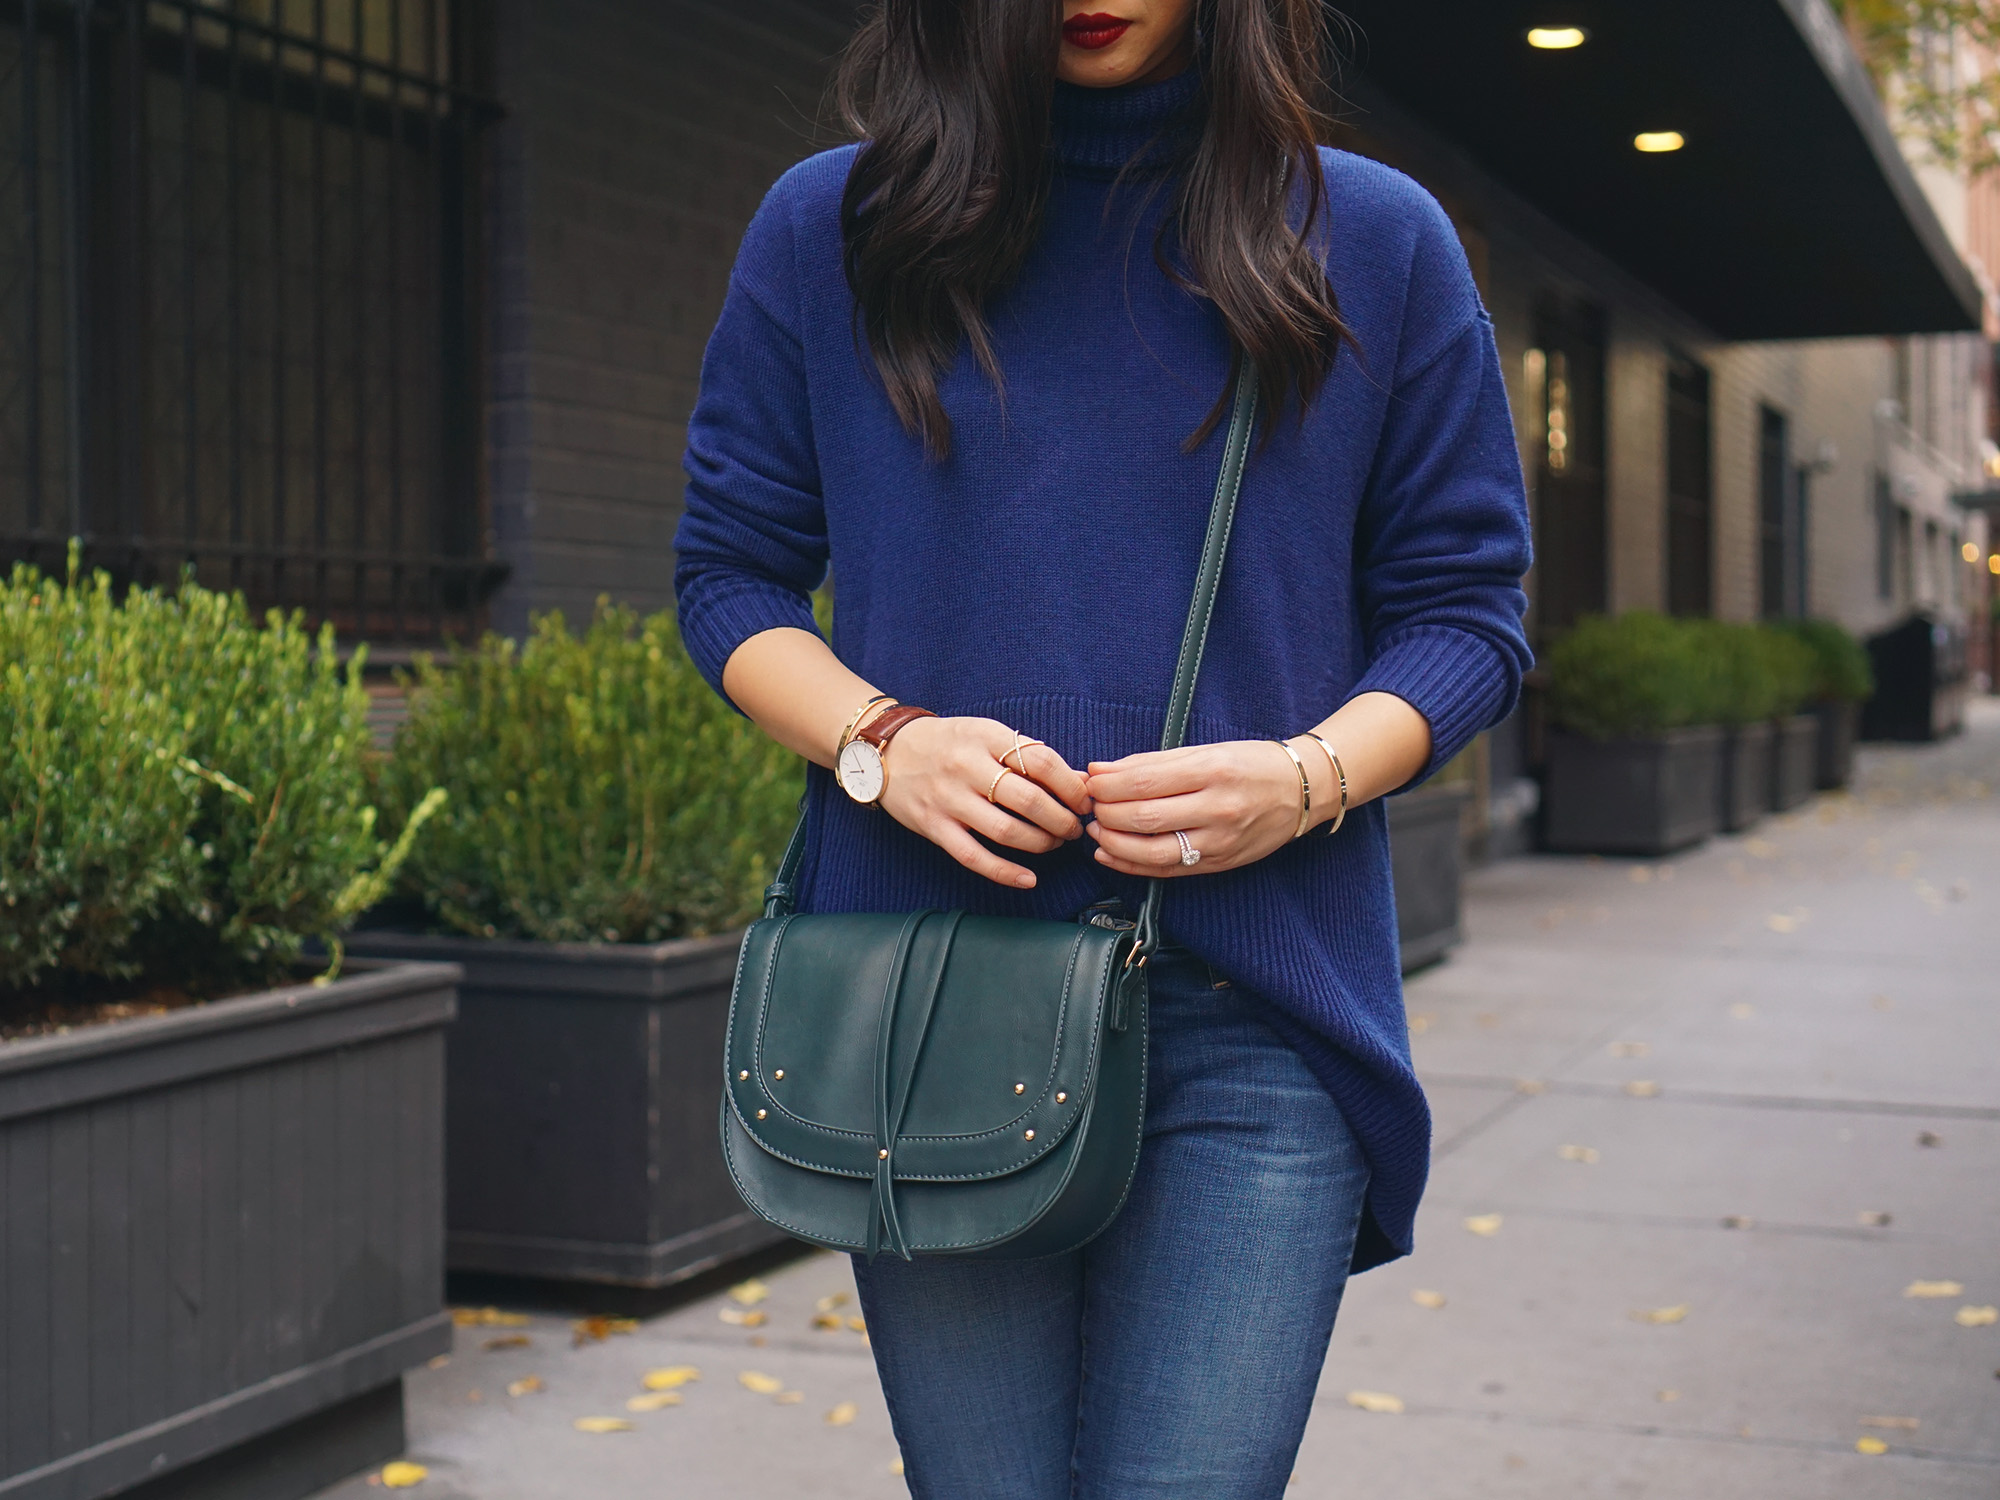 Casual Fall Outfit Idea: Navy Turtleneck & Ripped Jeans